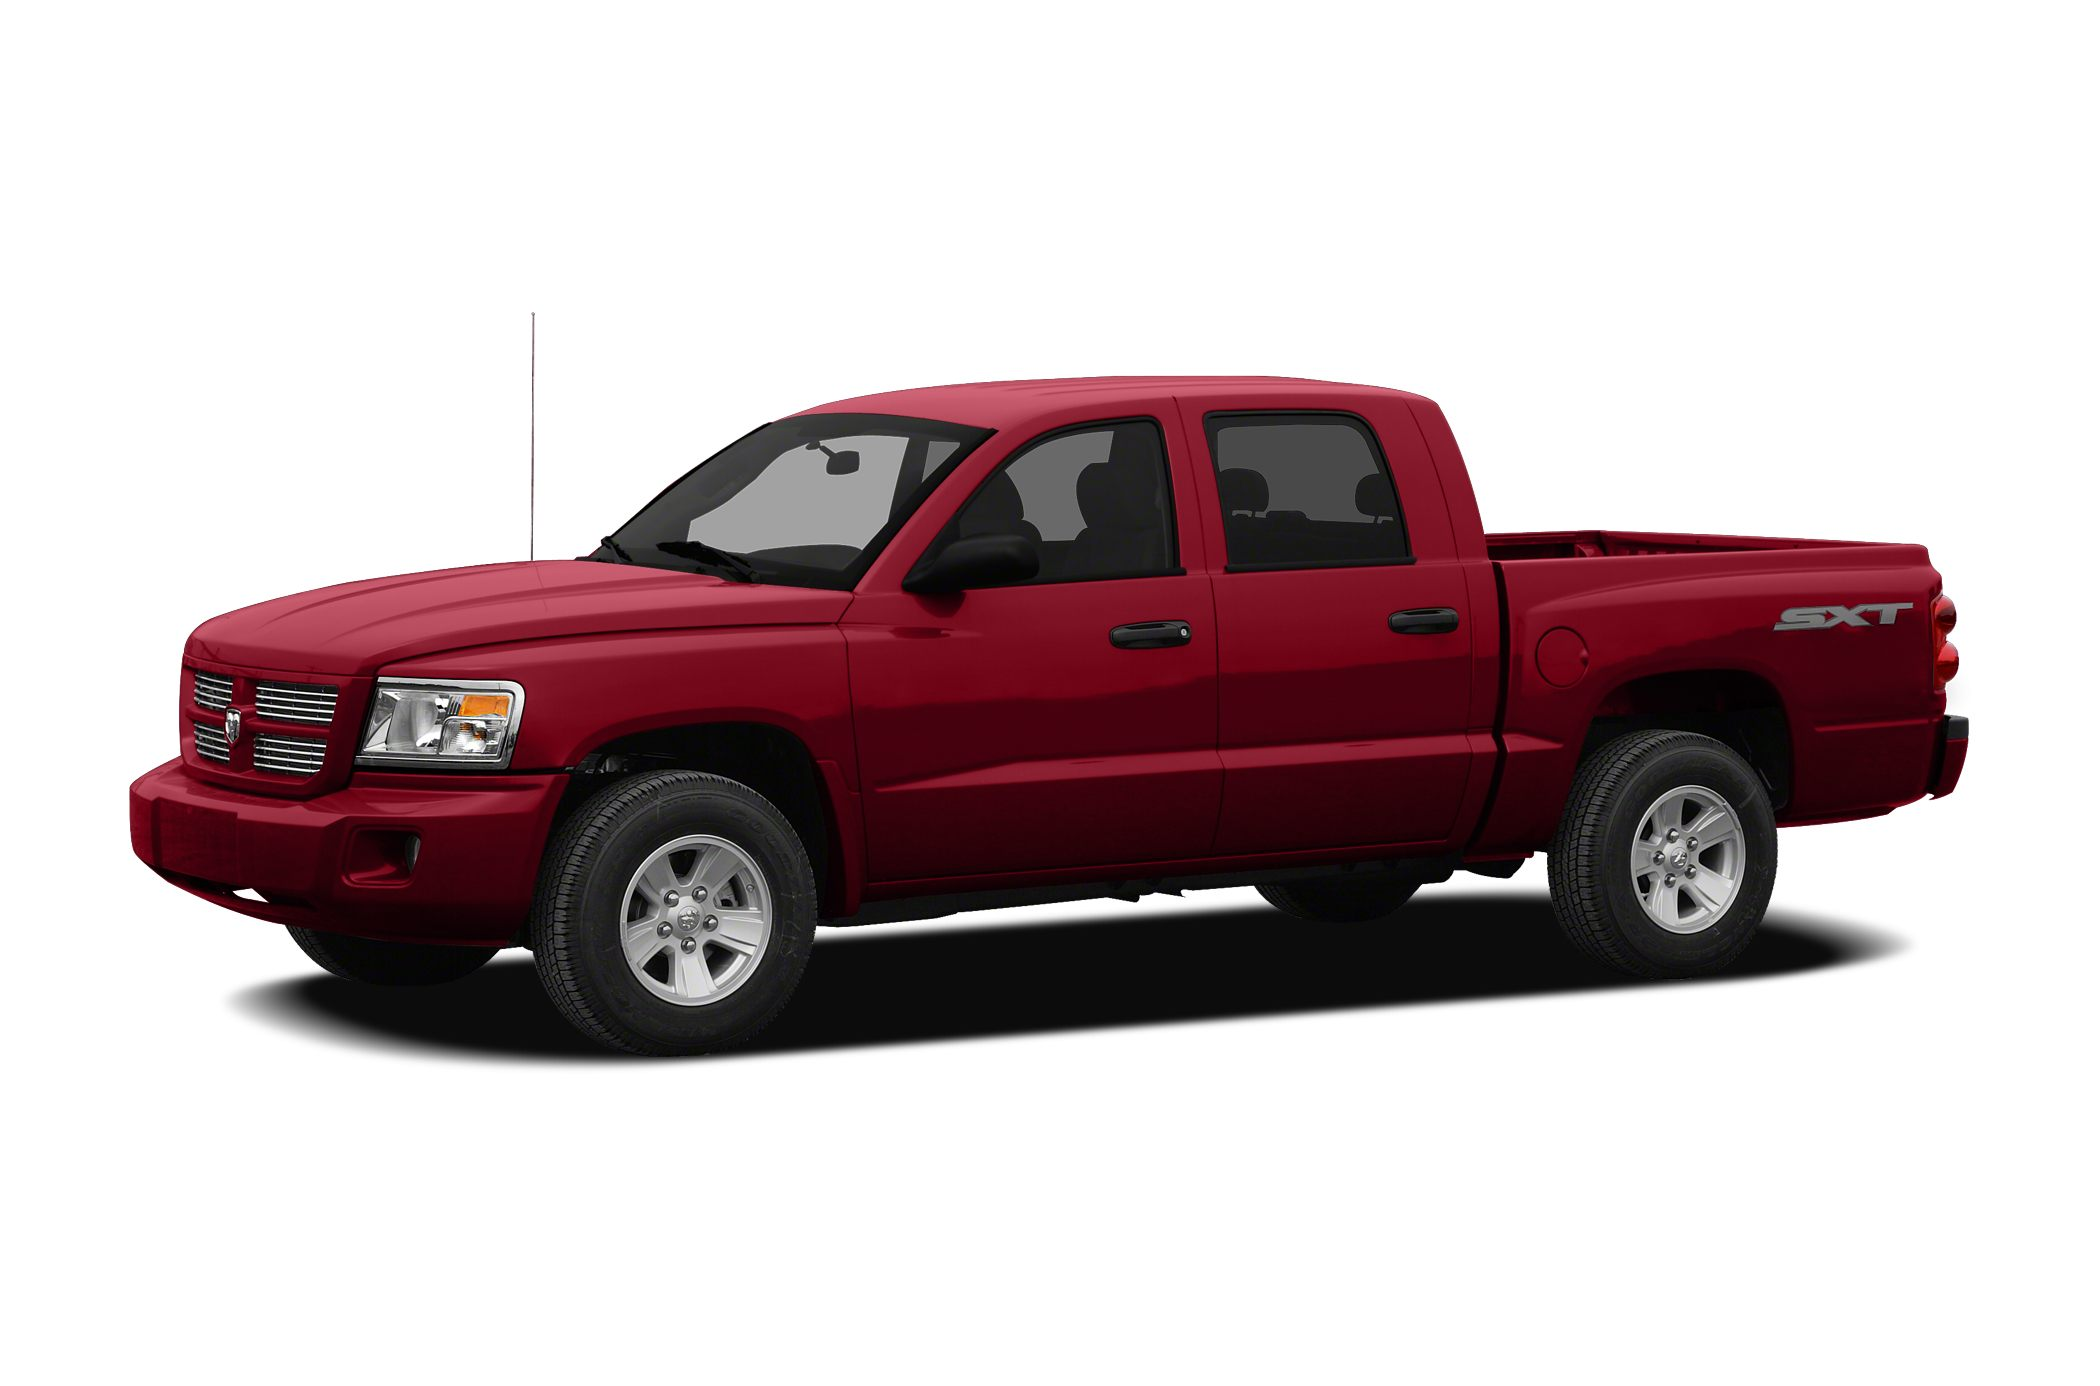 2011 Dodge Dakota Big Horn/Lone Star Crew Cab Pickup for sale in Richmond for $19,270 with 70,522 miles.